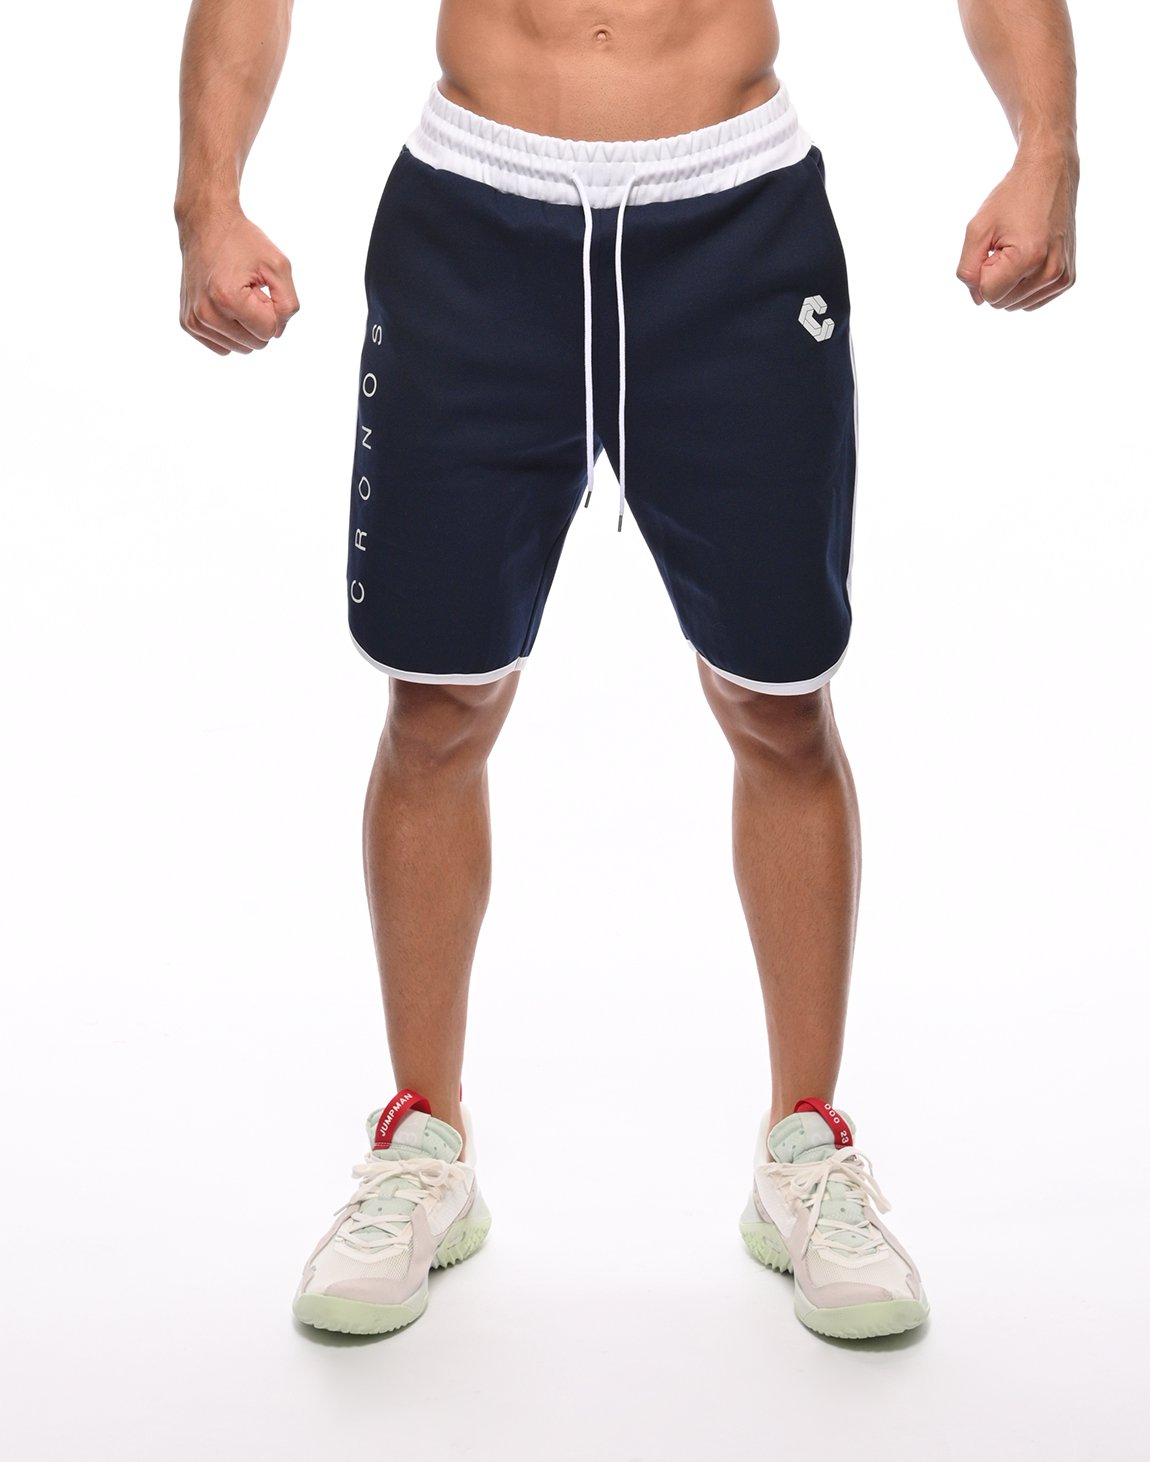 <img class='new_mark_img1' src='https://img.shop-pro.jp/img/new/icons1.gif' style='border:none;display:inline;margin:0px;padding:0px;width:auto;' />CRONOS 2STRIPE SHORTS【NAVY】